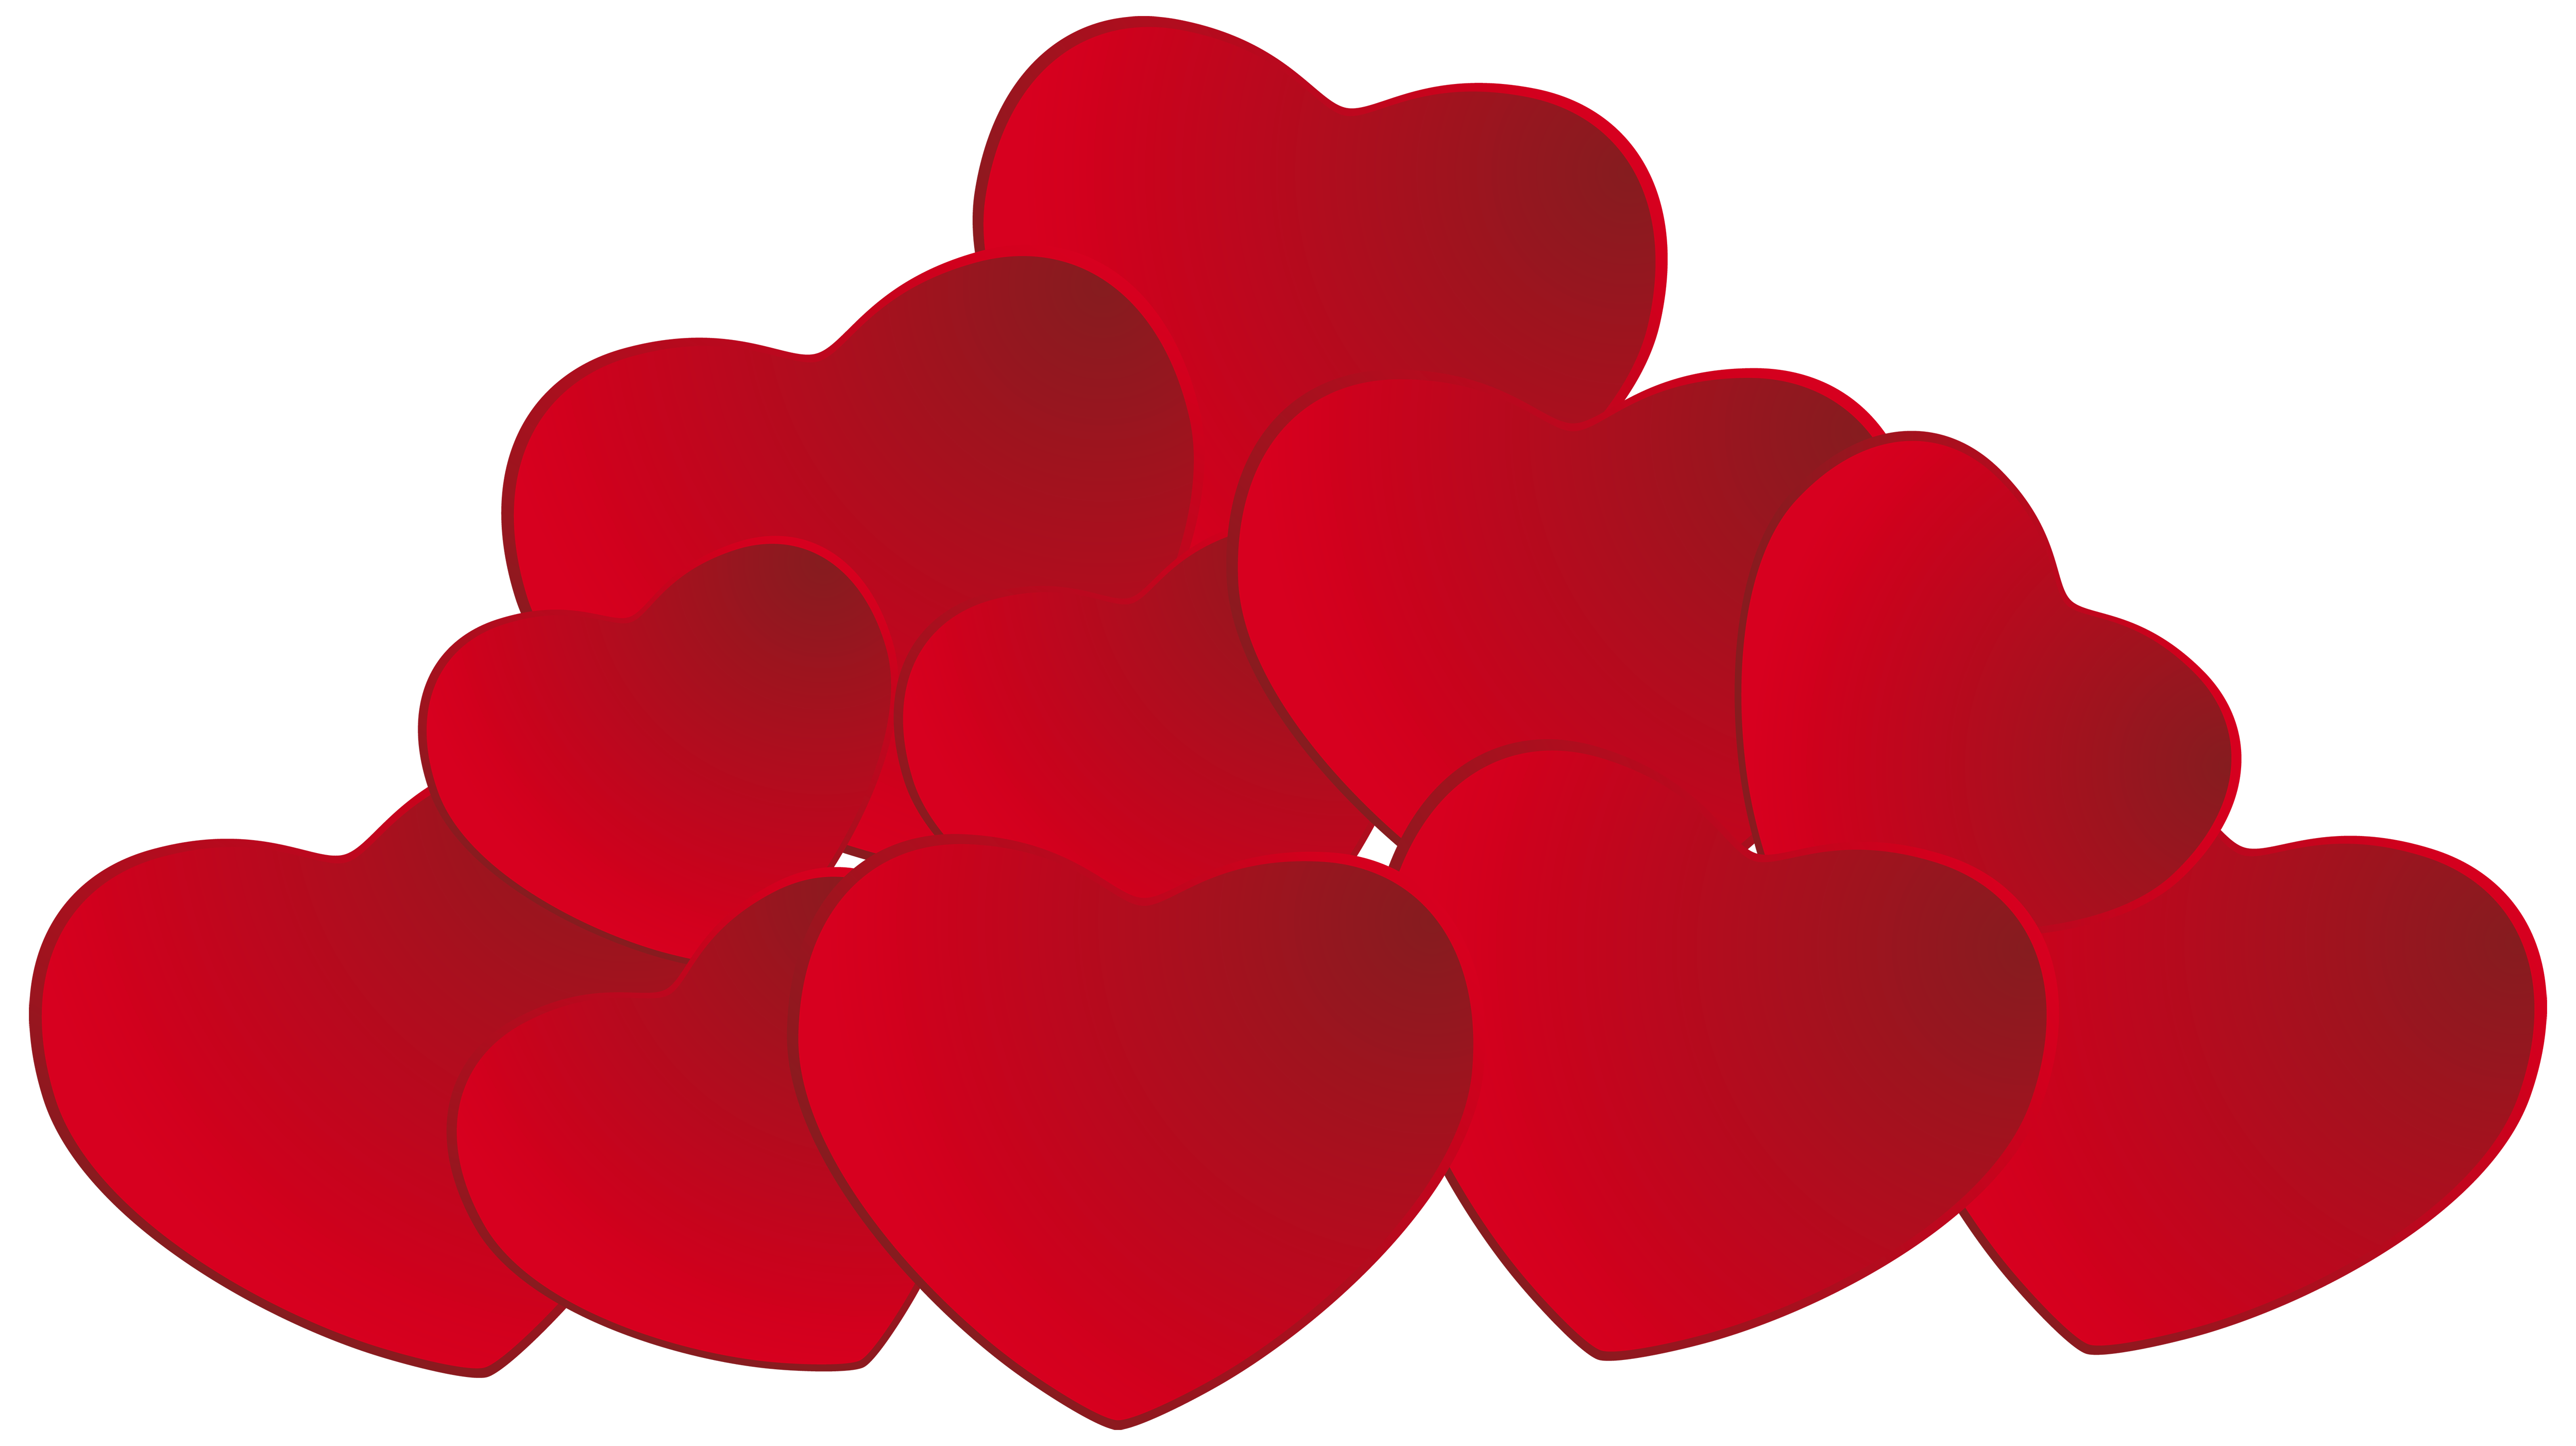 Mini heart clipart picture royalty free download Pile of Hearts PNG Clipart - Best WEB Clipart picture royalty free download